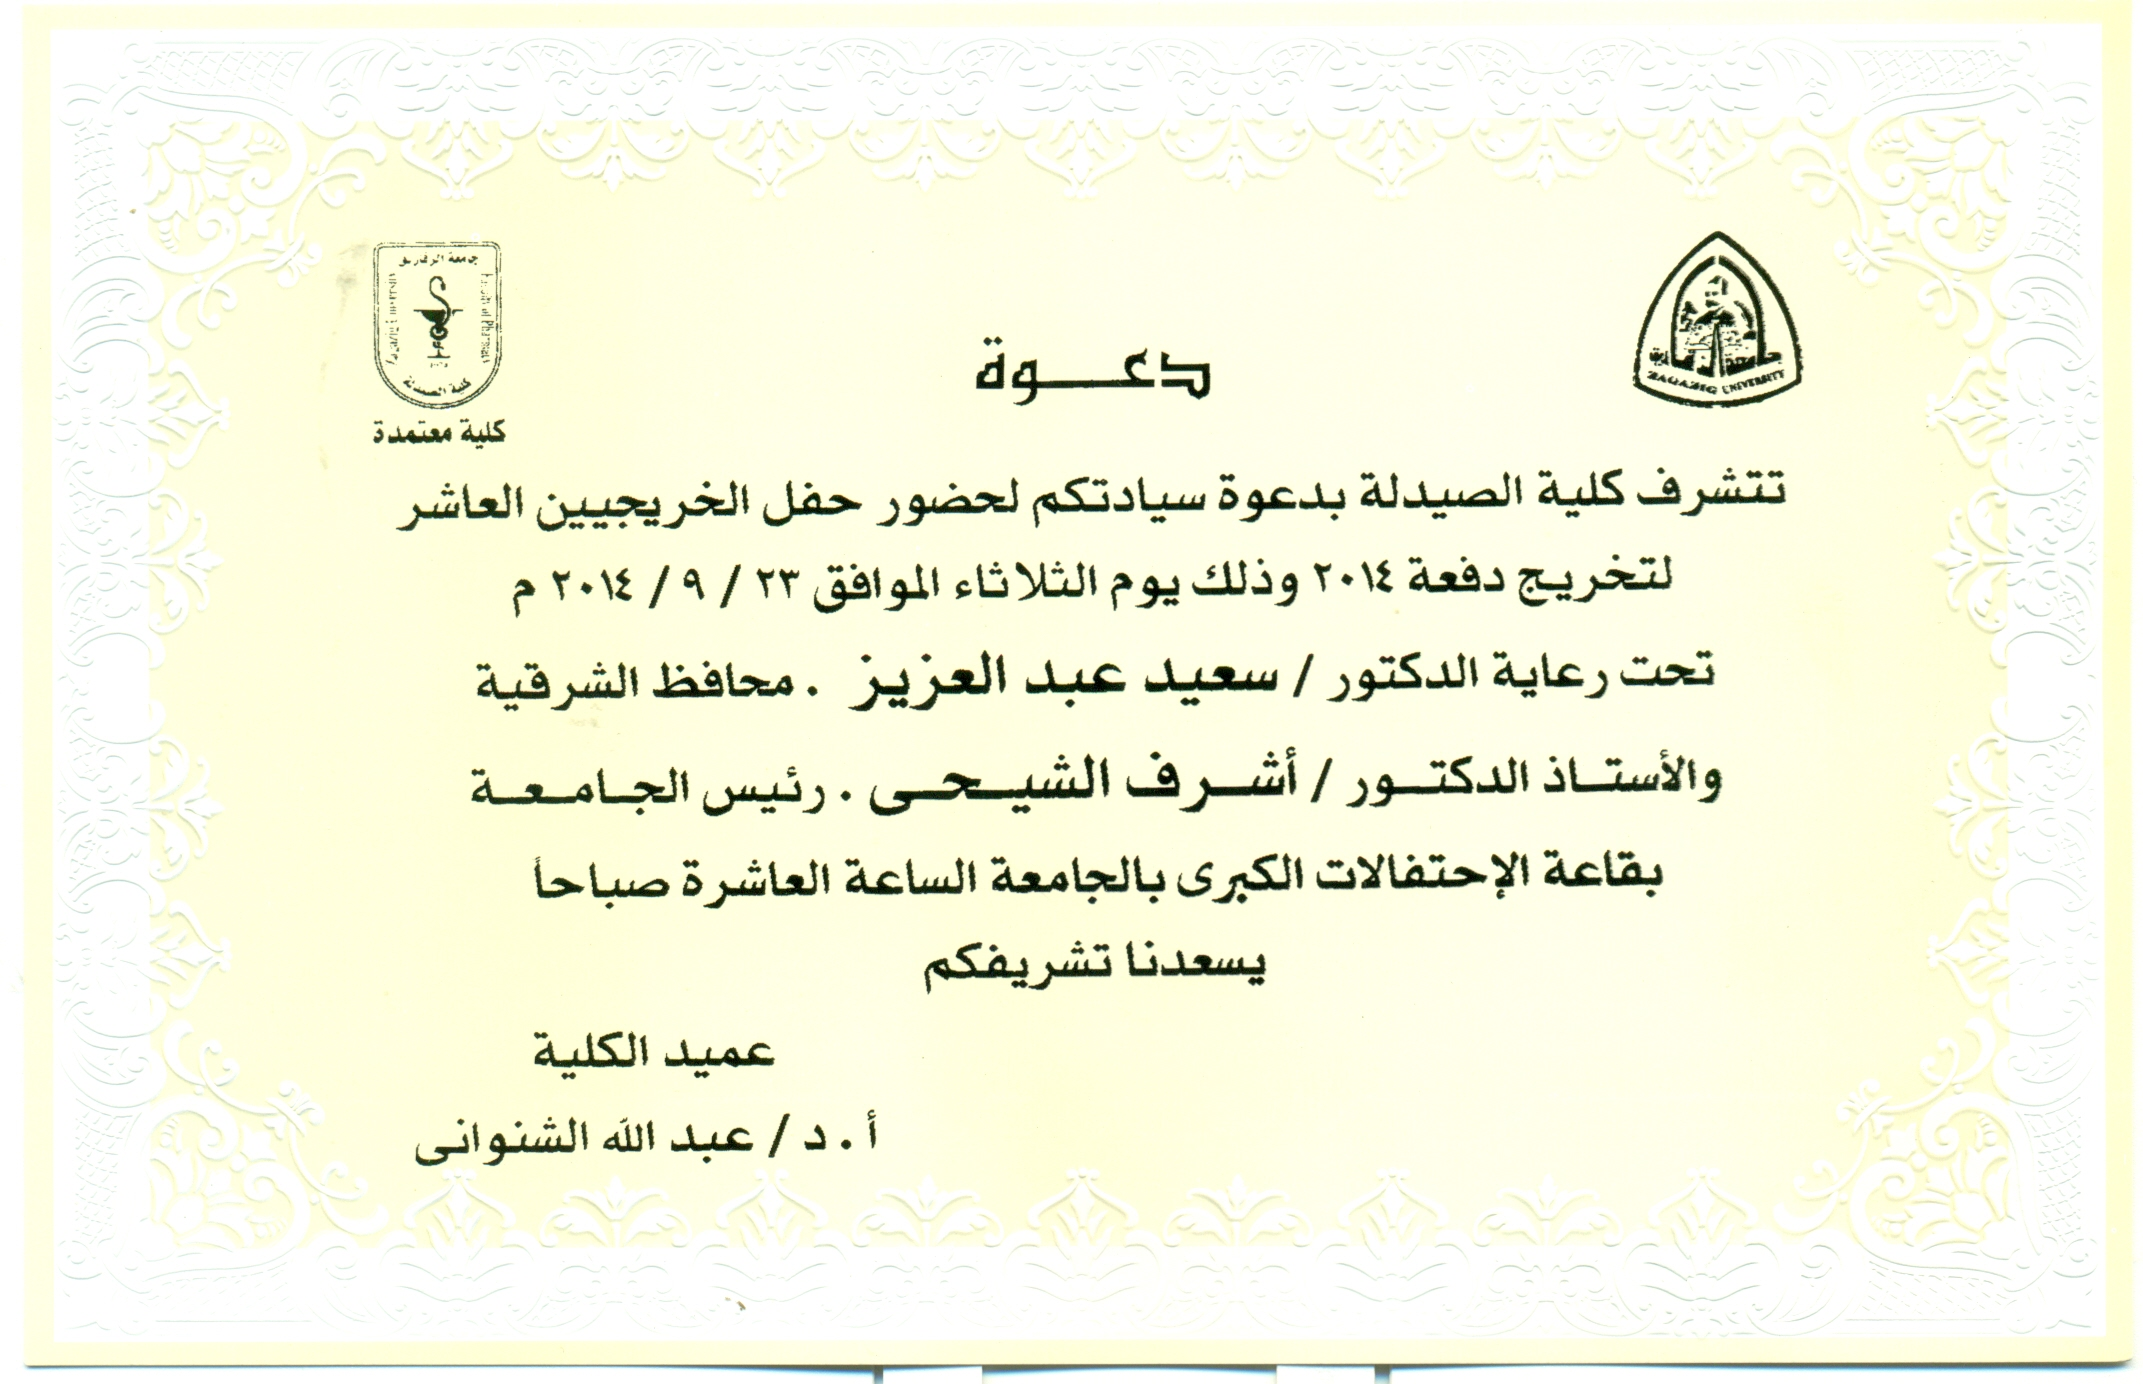 An invitation to attend the ceremony, graduates Tenth graduation day 2014 23/09/2014